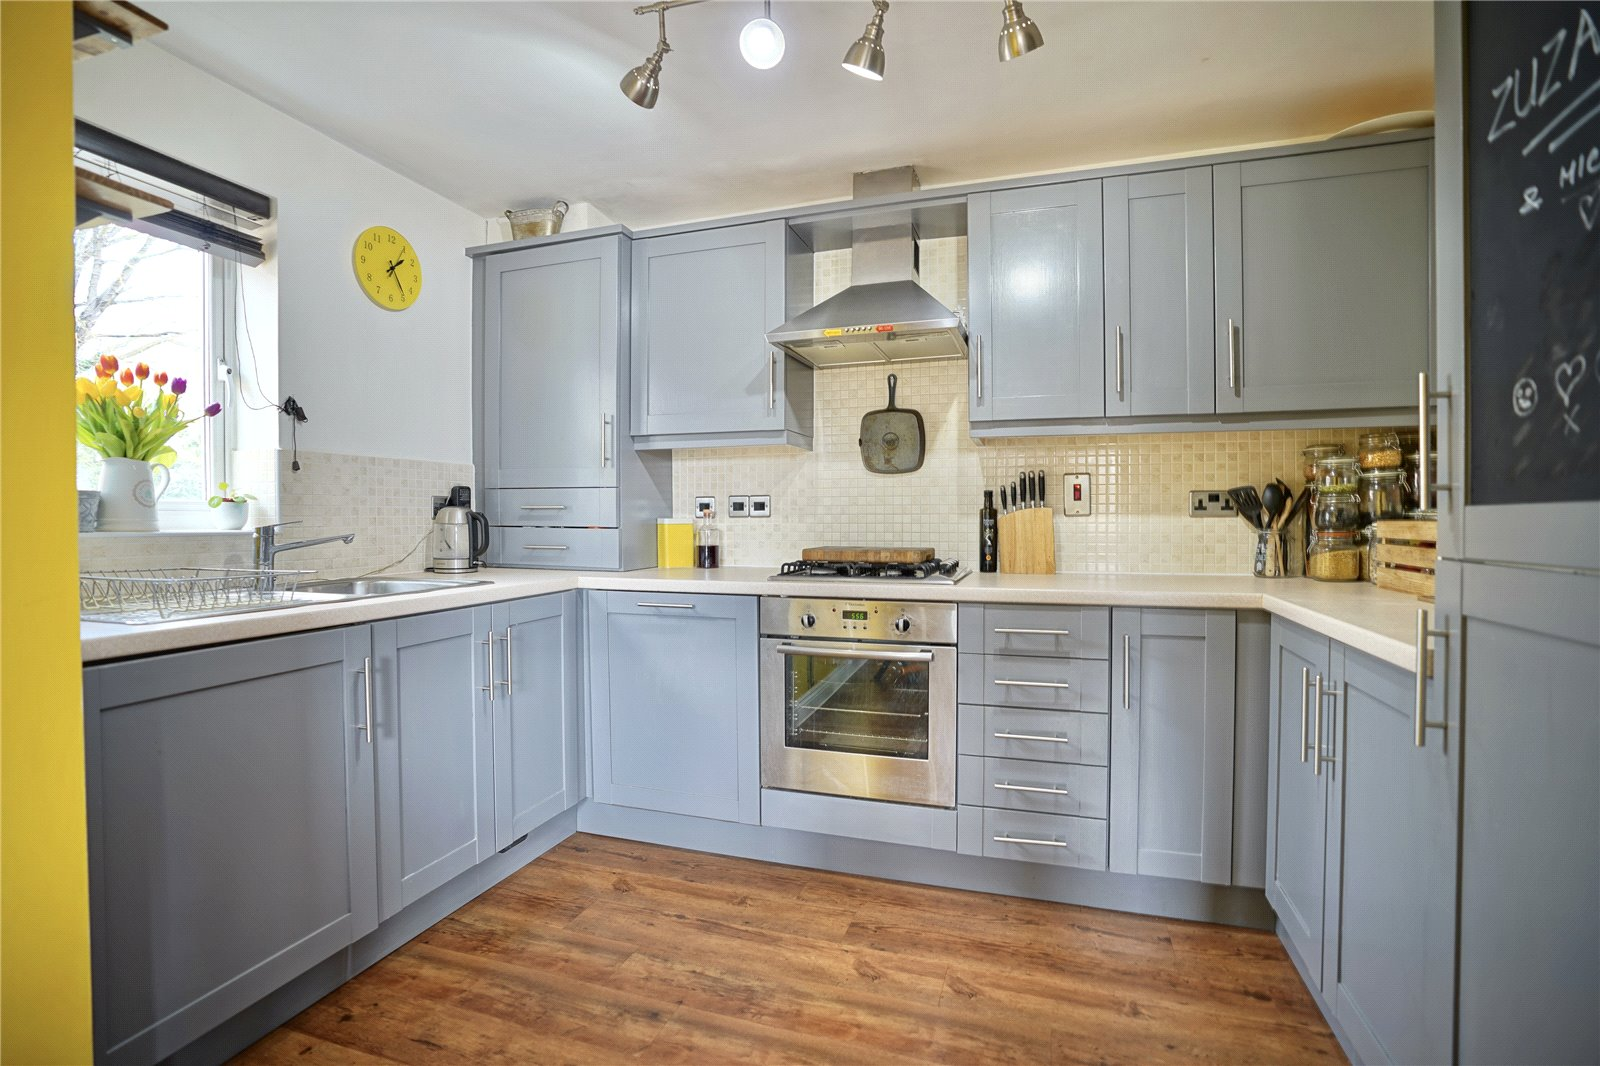 2 bed apartment for sale in St. Ives, PE27 5QL 2